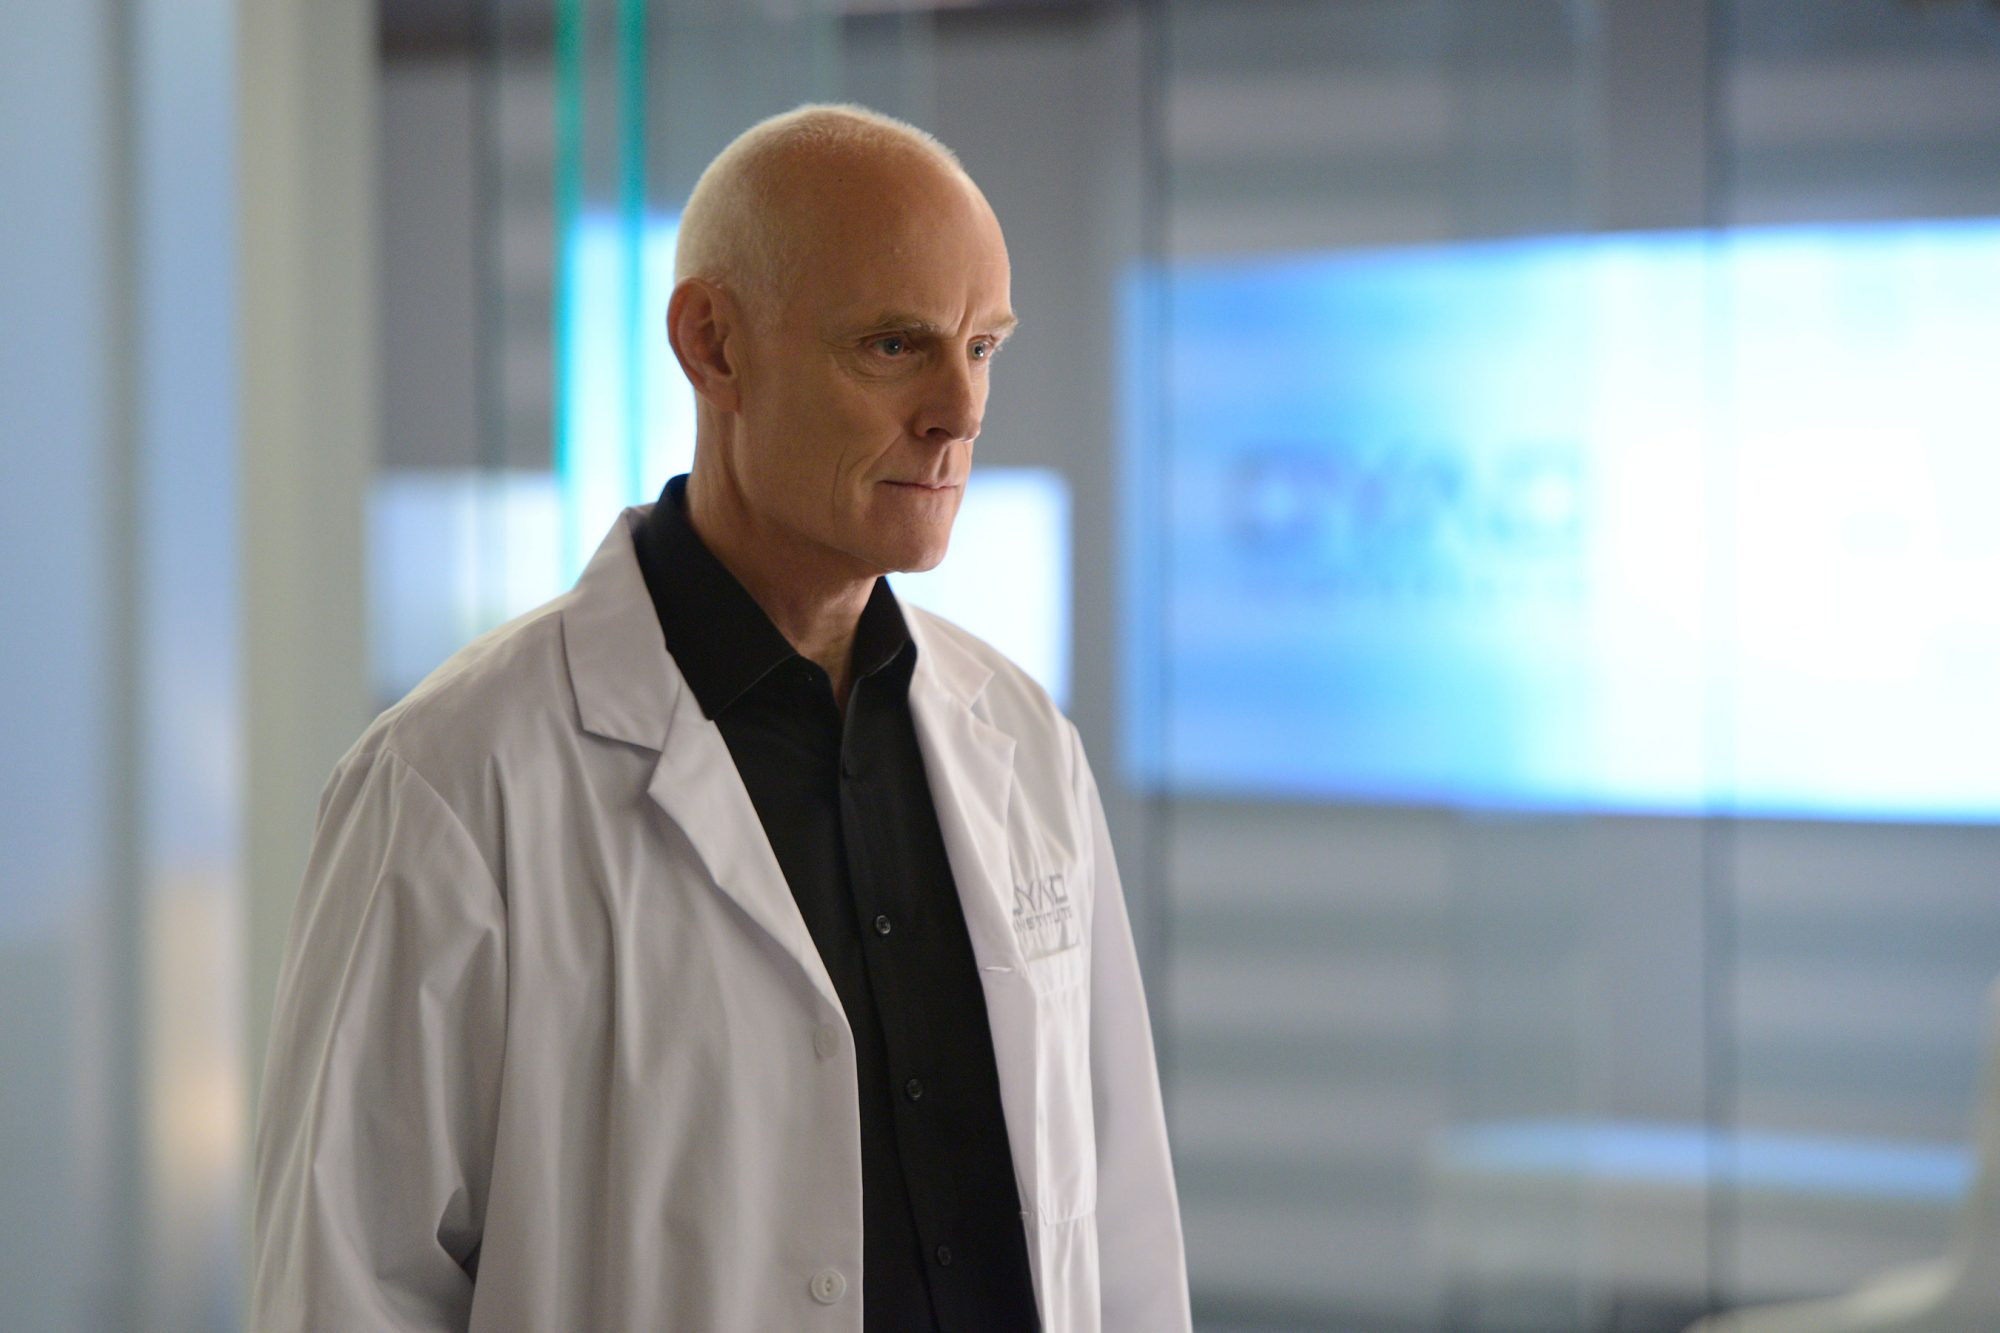 Orphan BlackDr. Leekie (played by Matt Frewer).